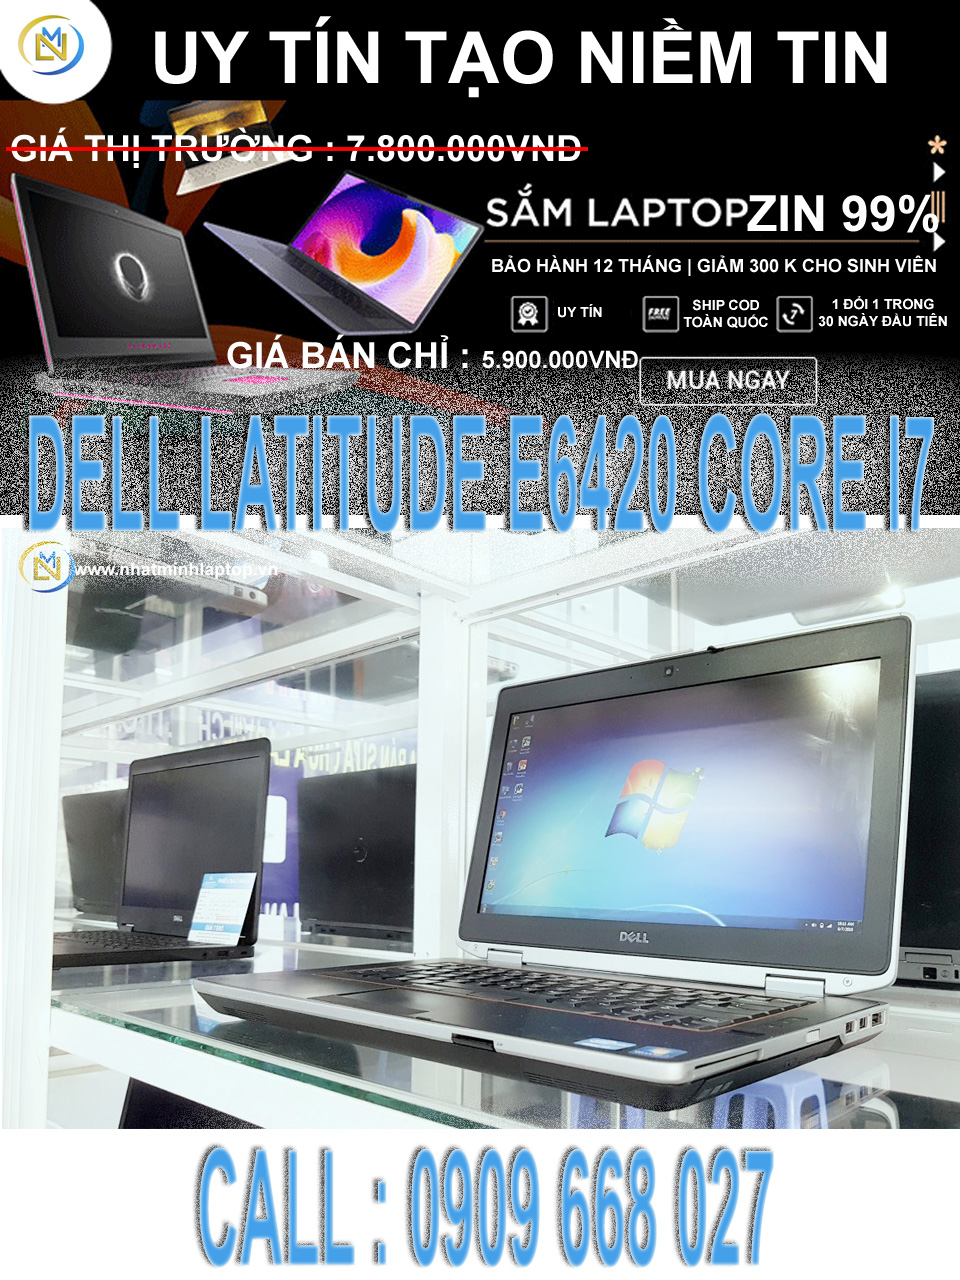 DELL LATITUDE E6420 CORE I7